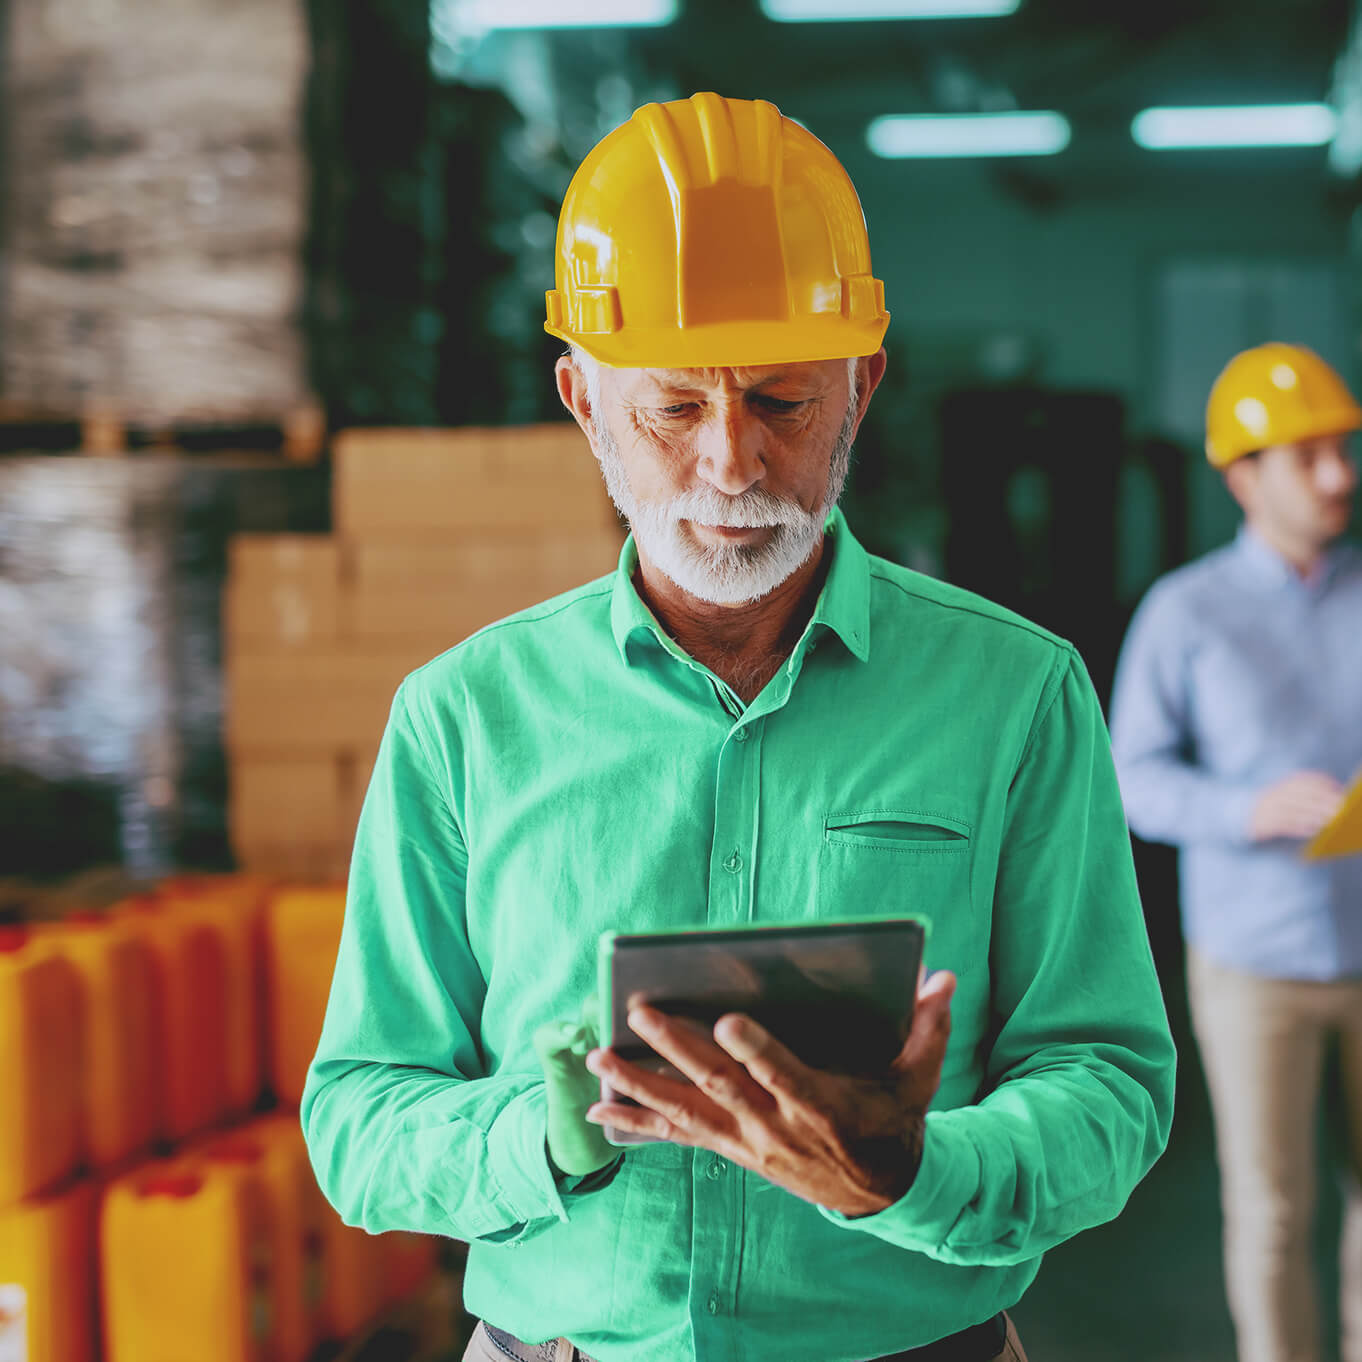 Elderly construction worker with a white beard wearing a yellow hard hat and light green shirt. He looks over the tablet he holds with a look of concentration on his face.